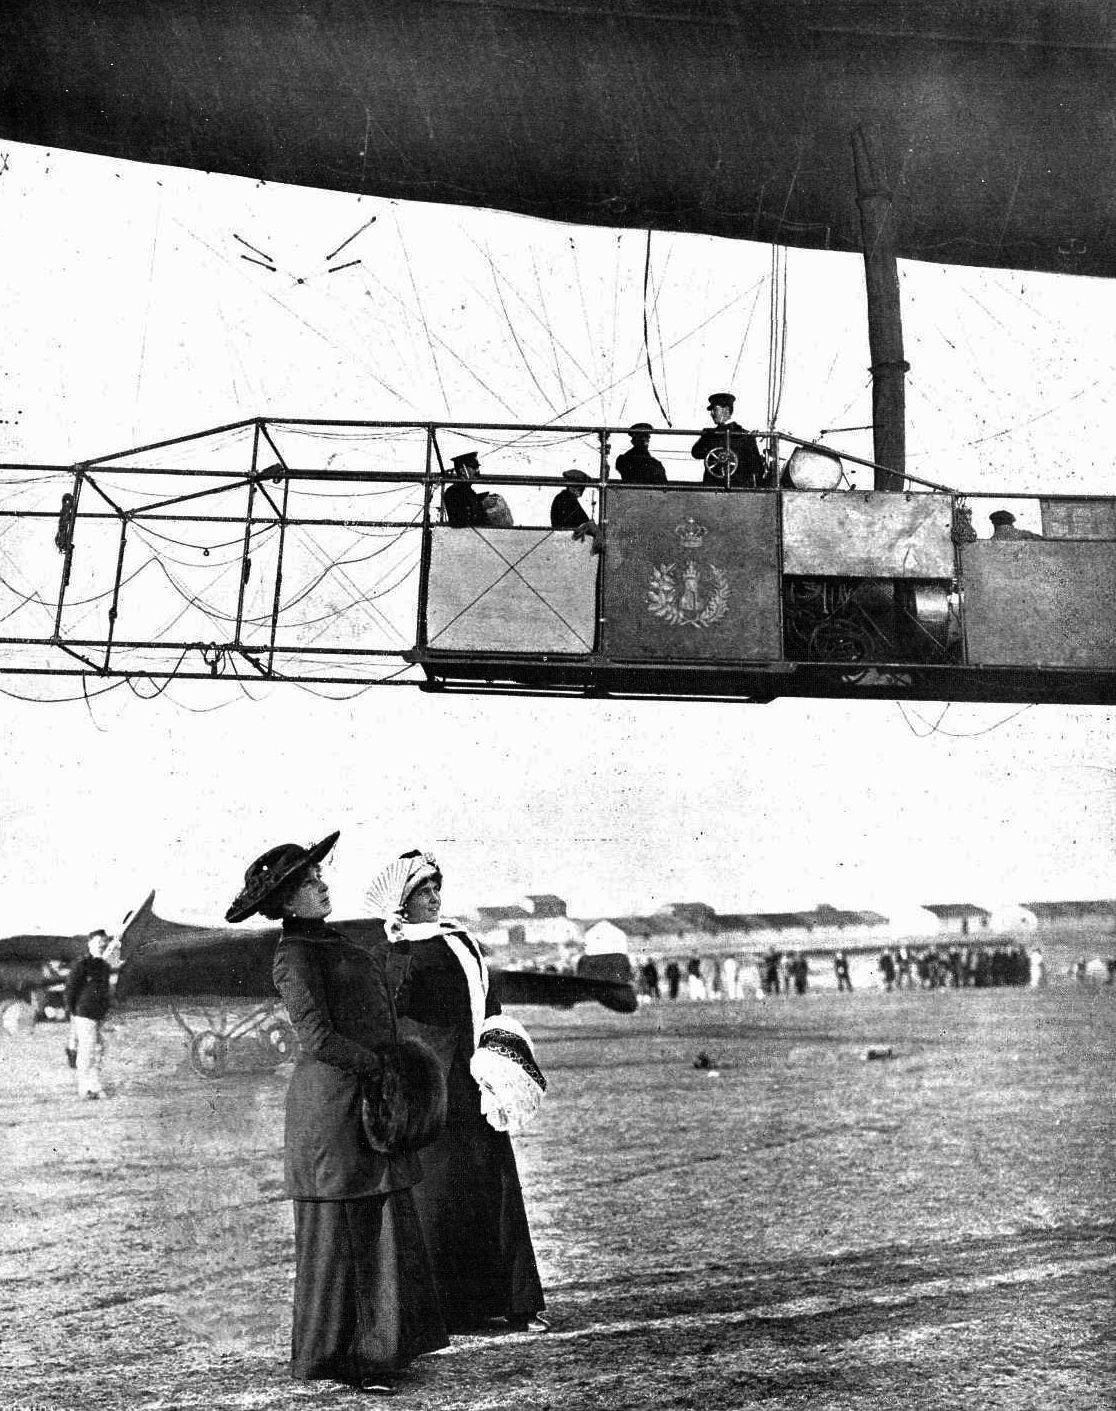 King Alfonso XIII of Spain showing off for the press aboard the airship España in 1913 while consort Victoria Eugenia stays on land.